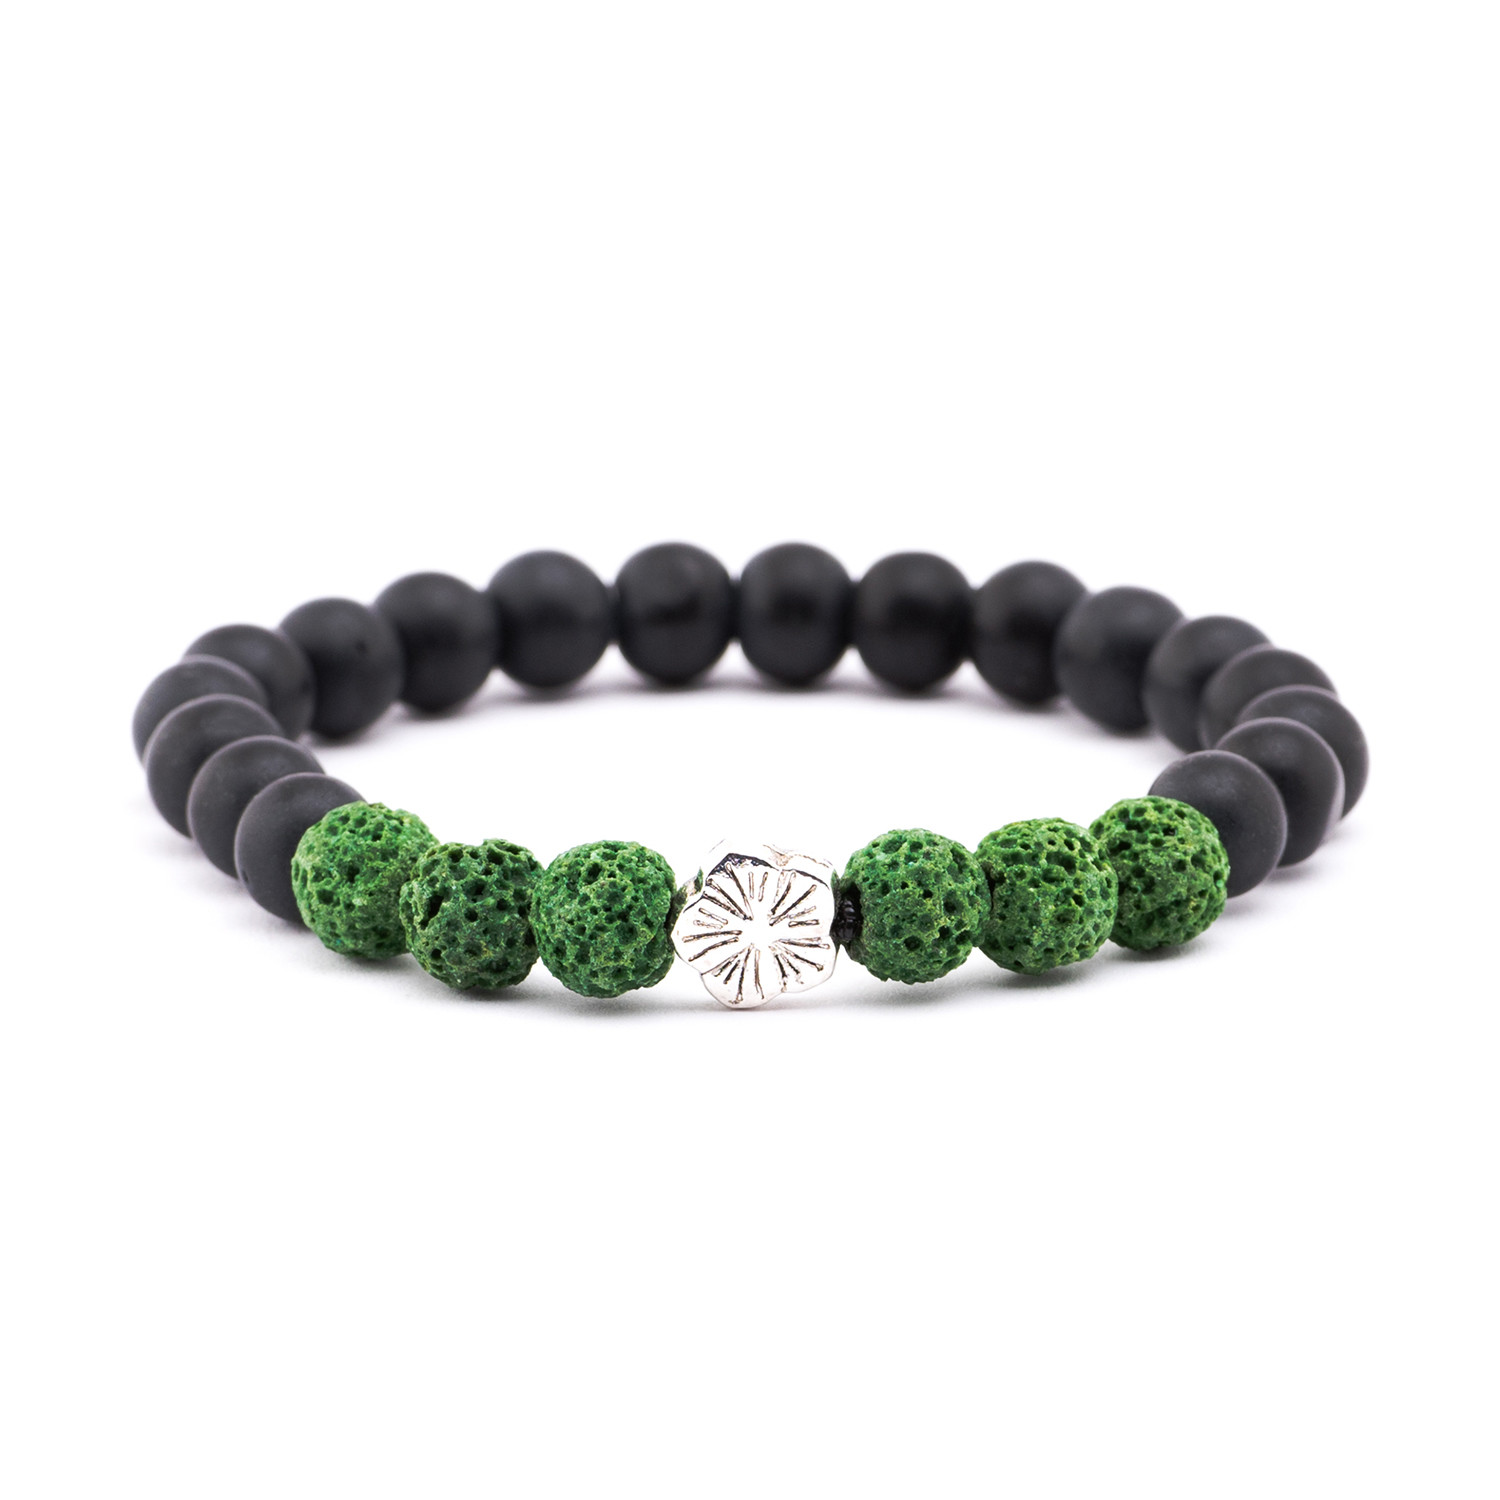 loading stones bracelet oksilver of fashion silicon en silicone stone green pulsera colors swarovski and zoom